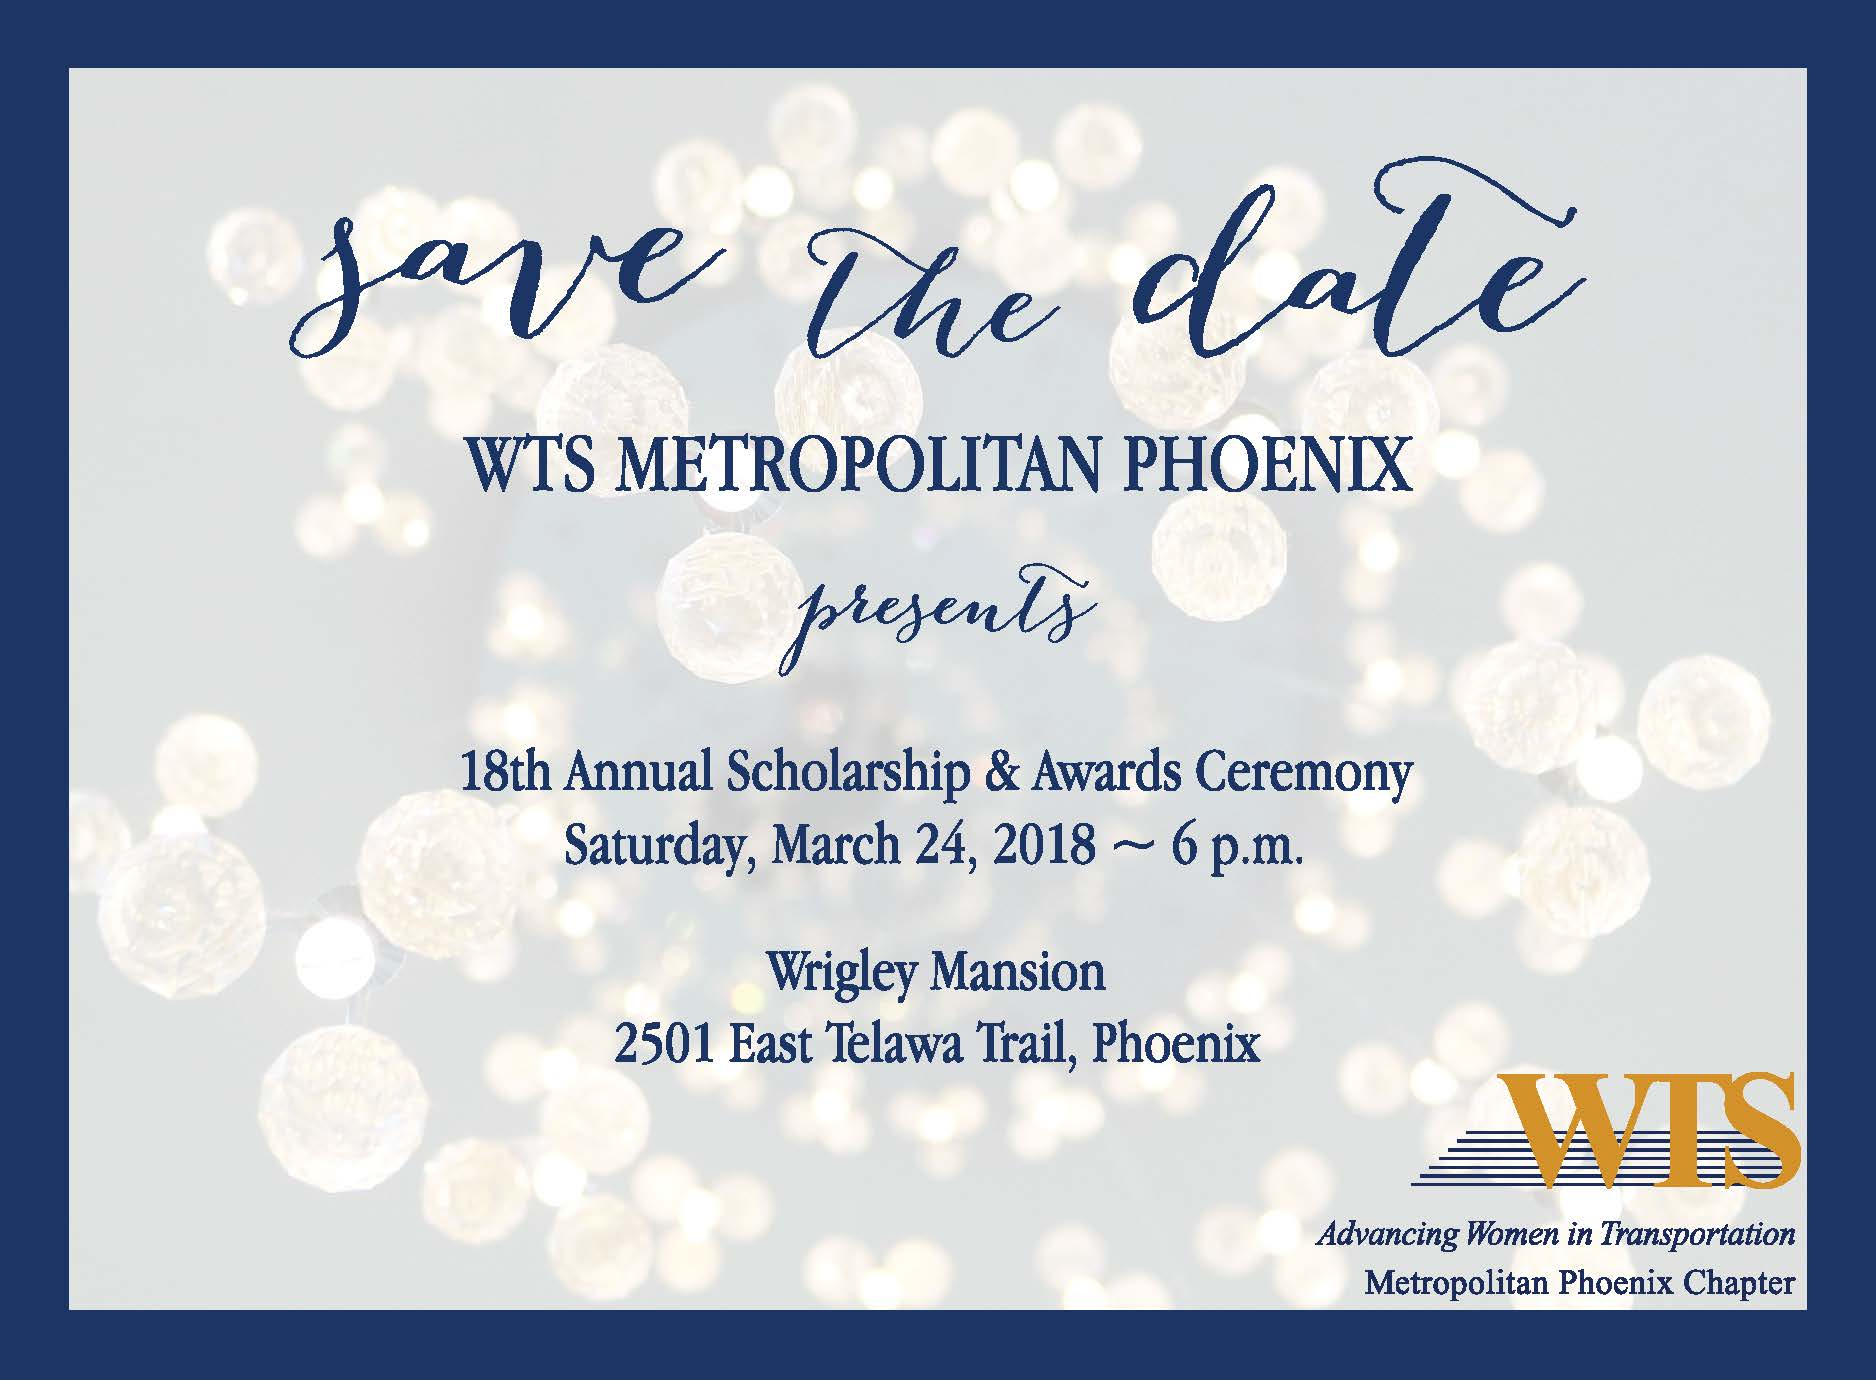 WTS Metropolitan Phoenix 19th Annual Scholarship & Awards Ceremony @ Wrigley Mansion | Phoenix | Arizona | United States